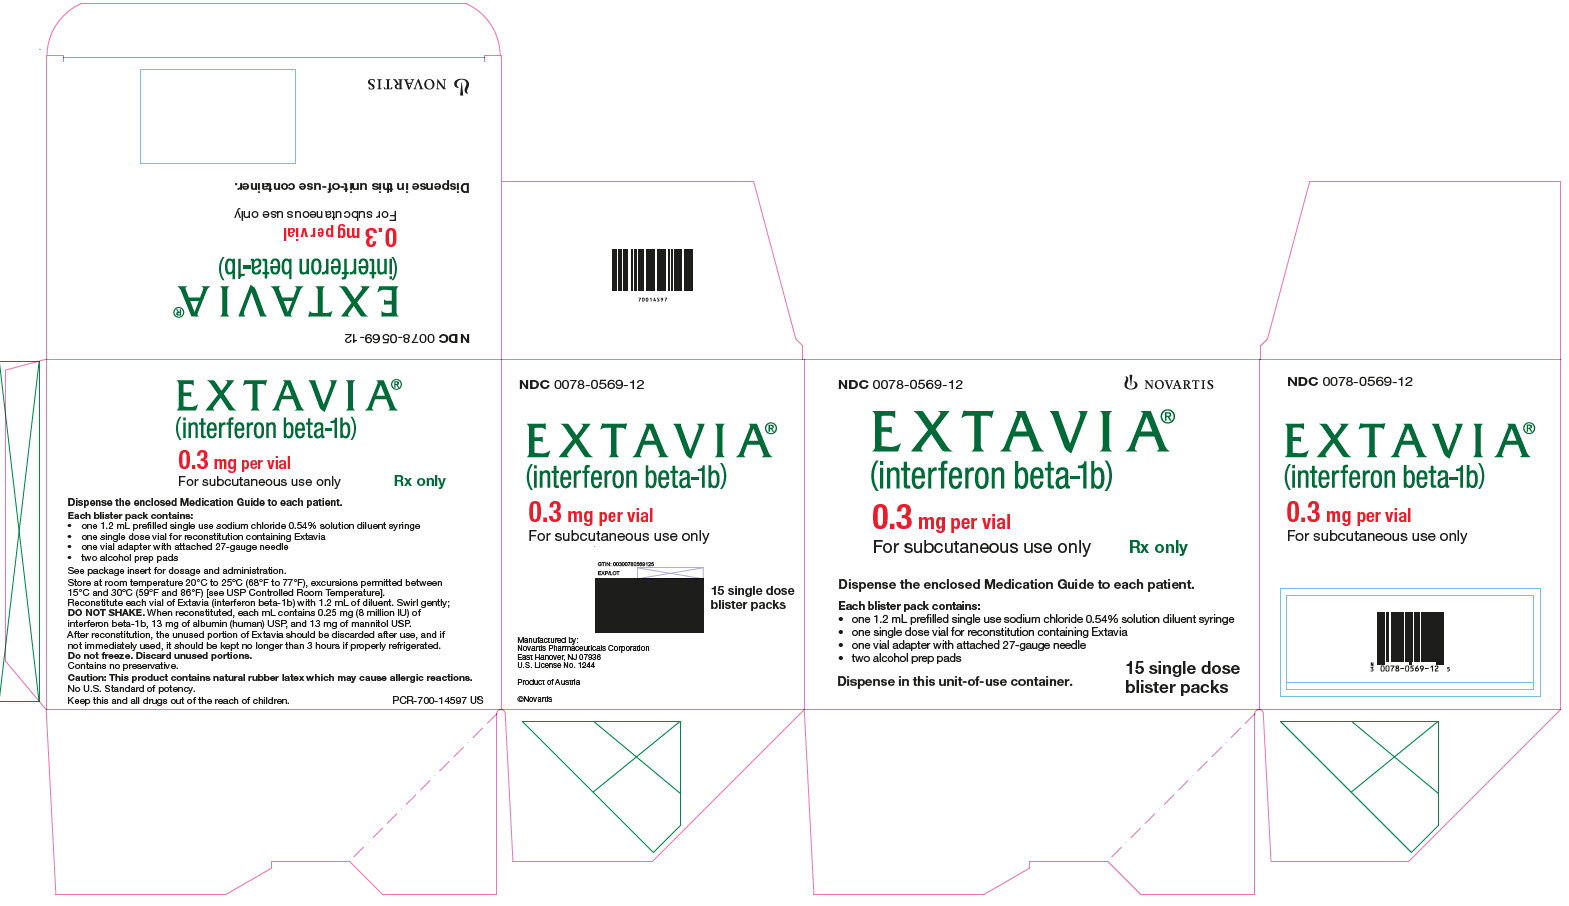 PRINCIPAL DISPLAY PANEL 									EXTAVIA 									(interferon beta-1b) 									0.3 mg per vial 									For subcutaneous use only